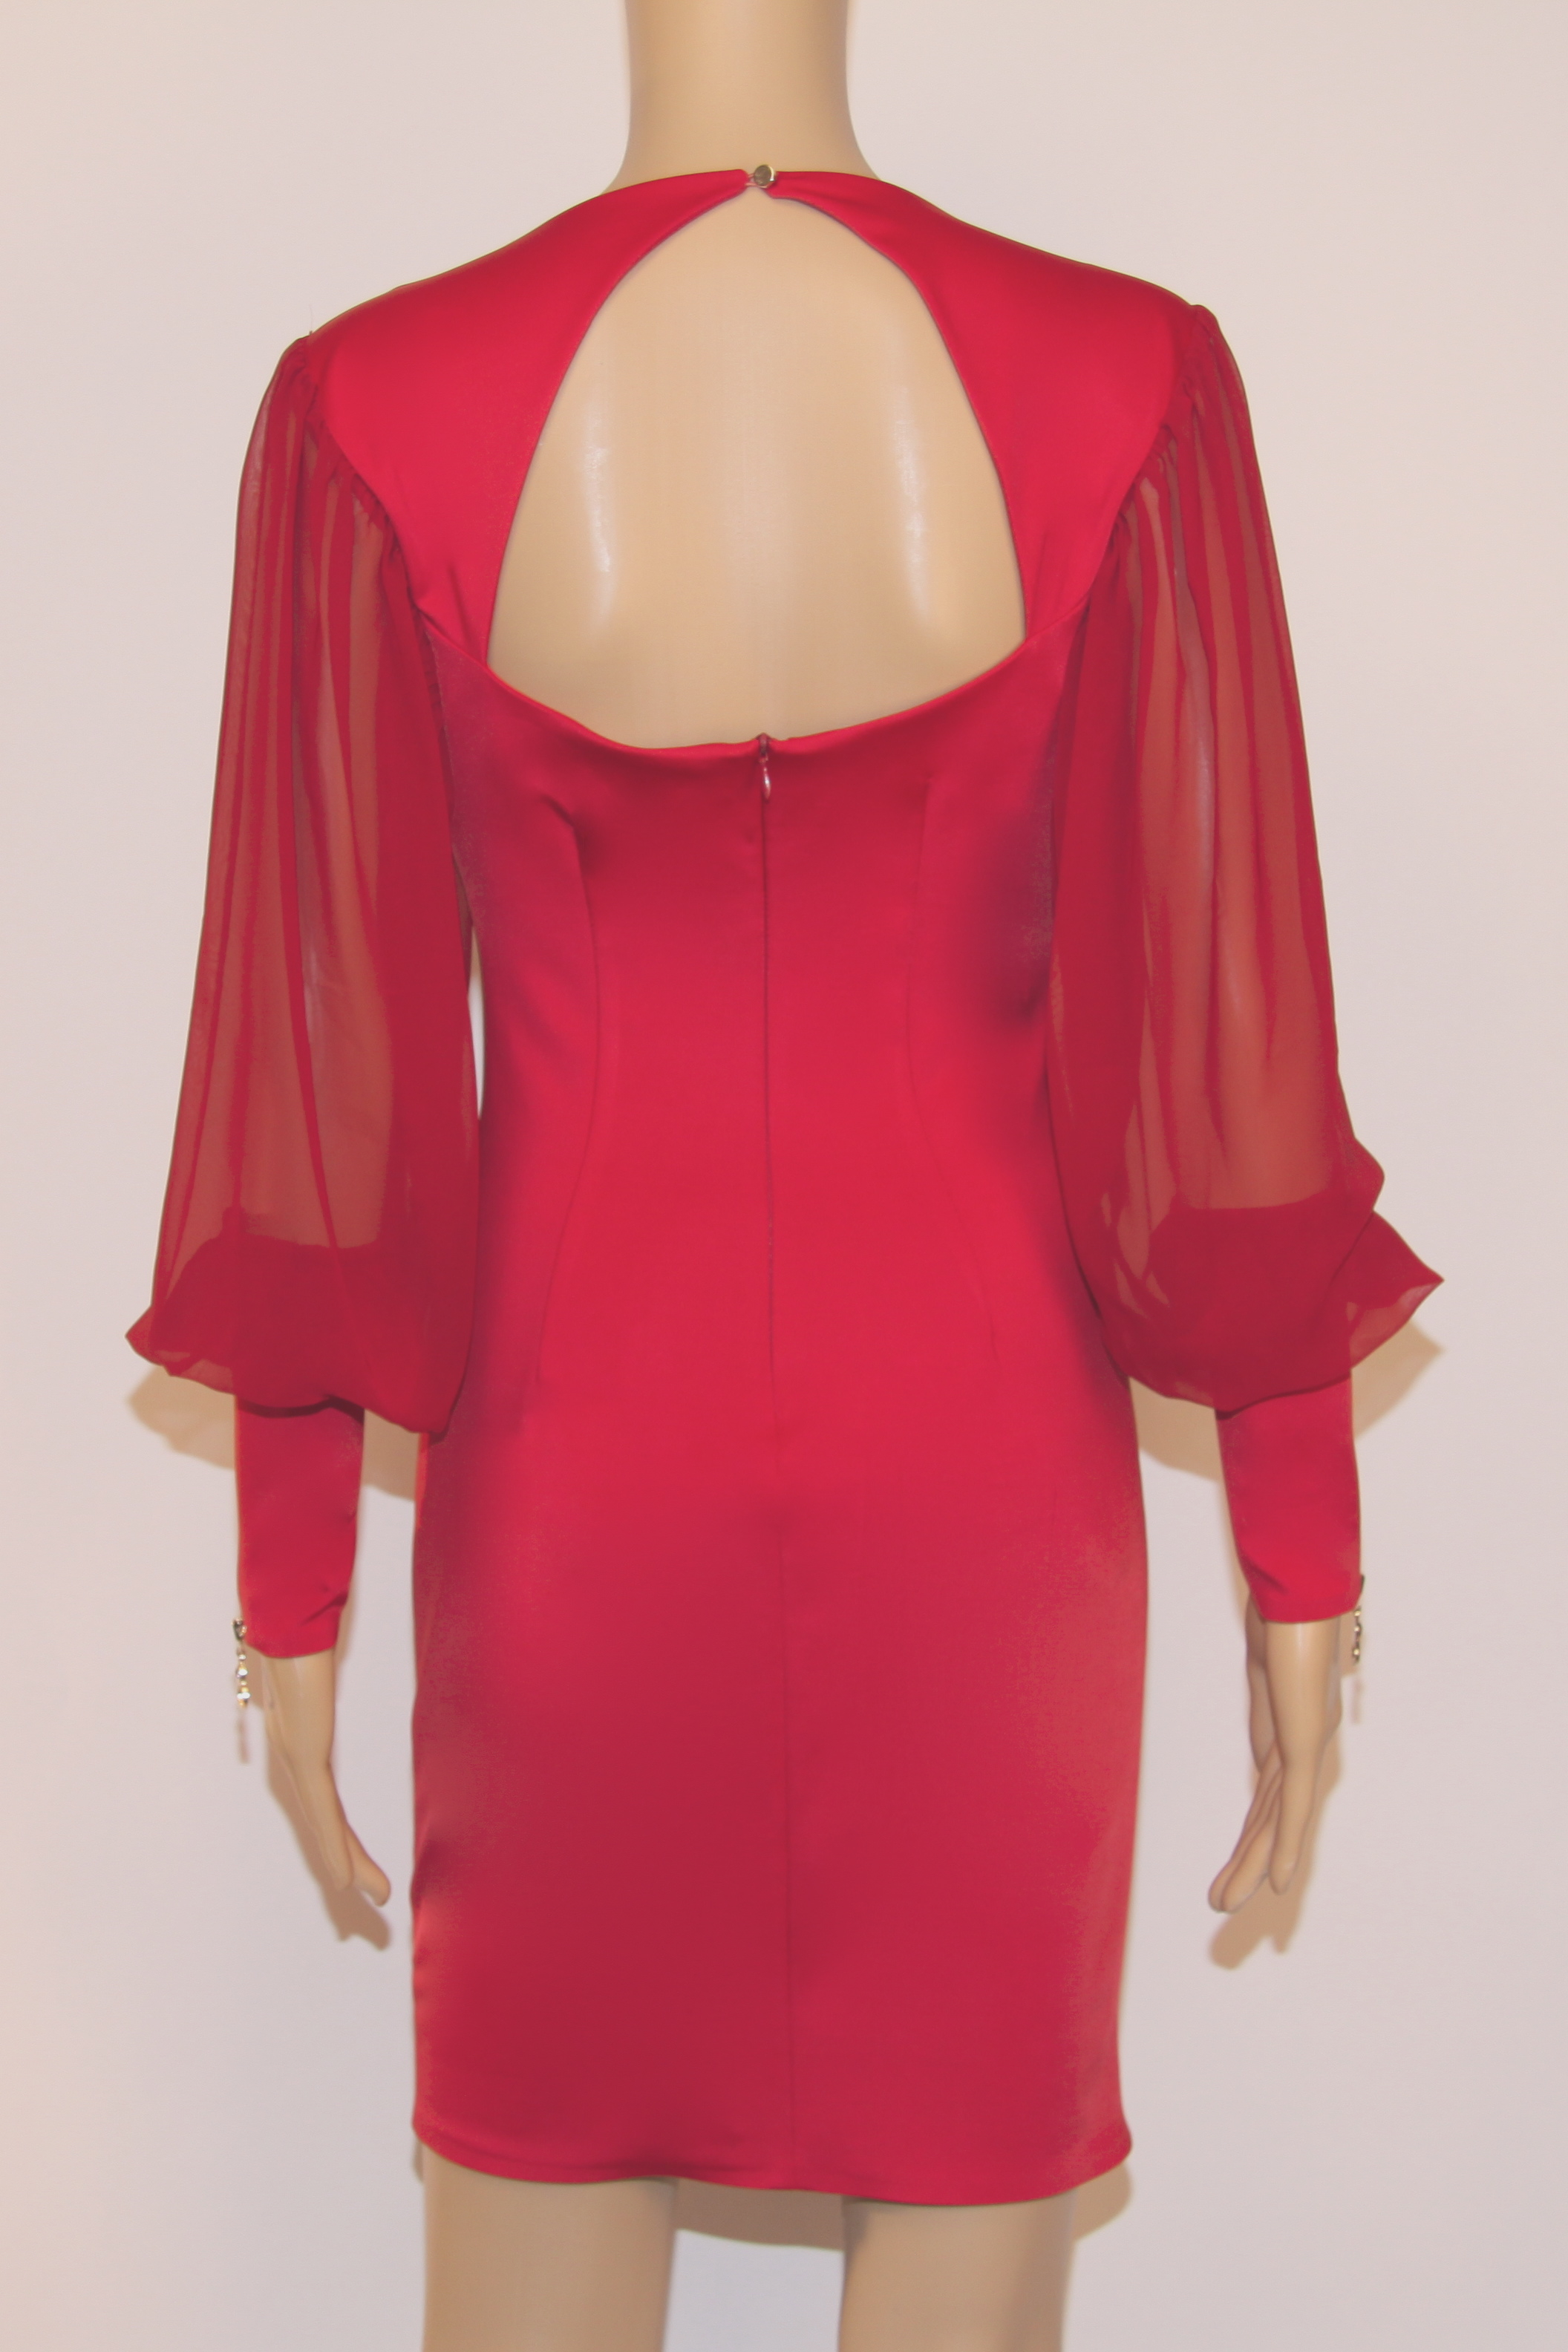 Red Bodycon Dress with Gold Studs | SkyStruk